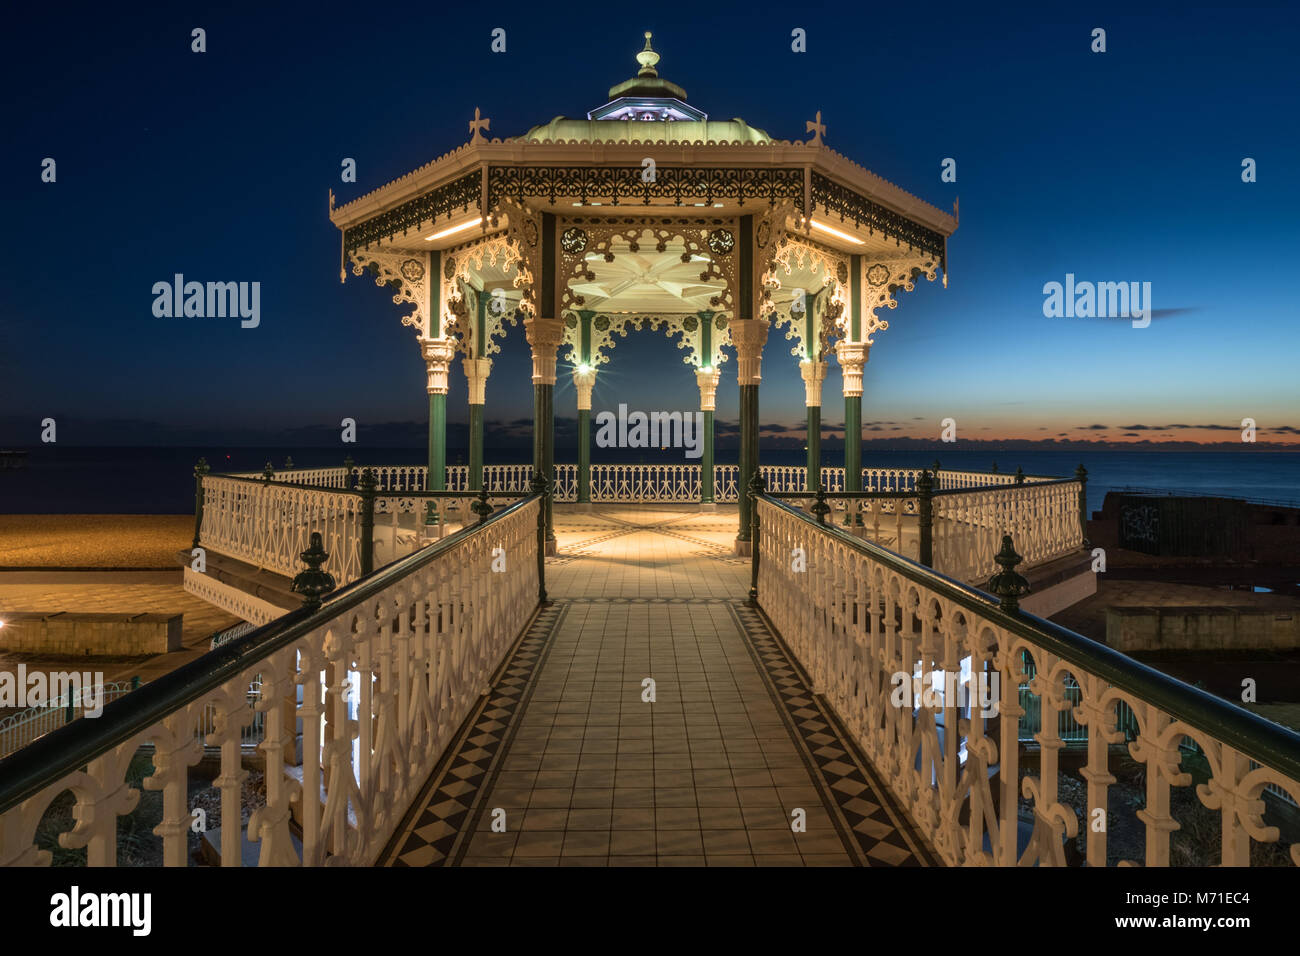 Brighton Bandstand at night - Stock Image